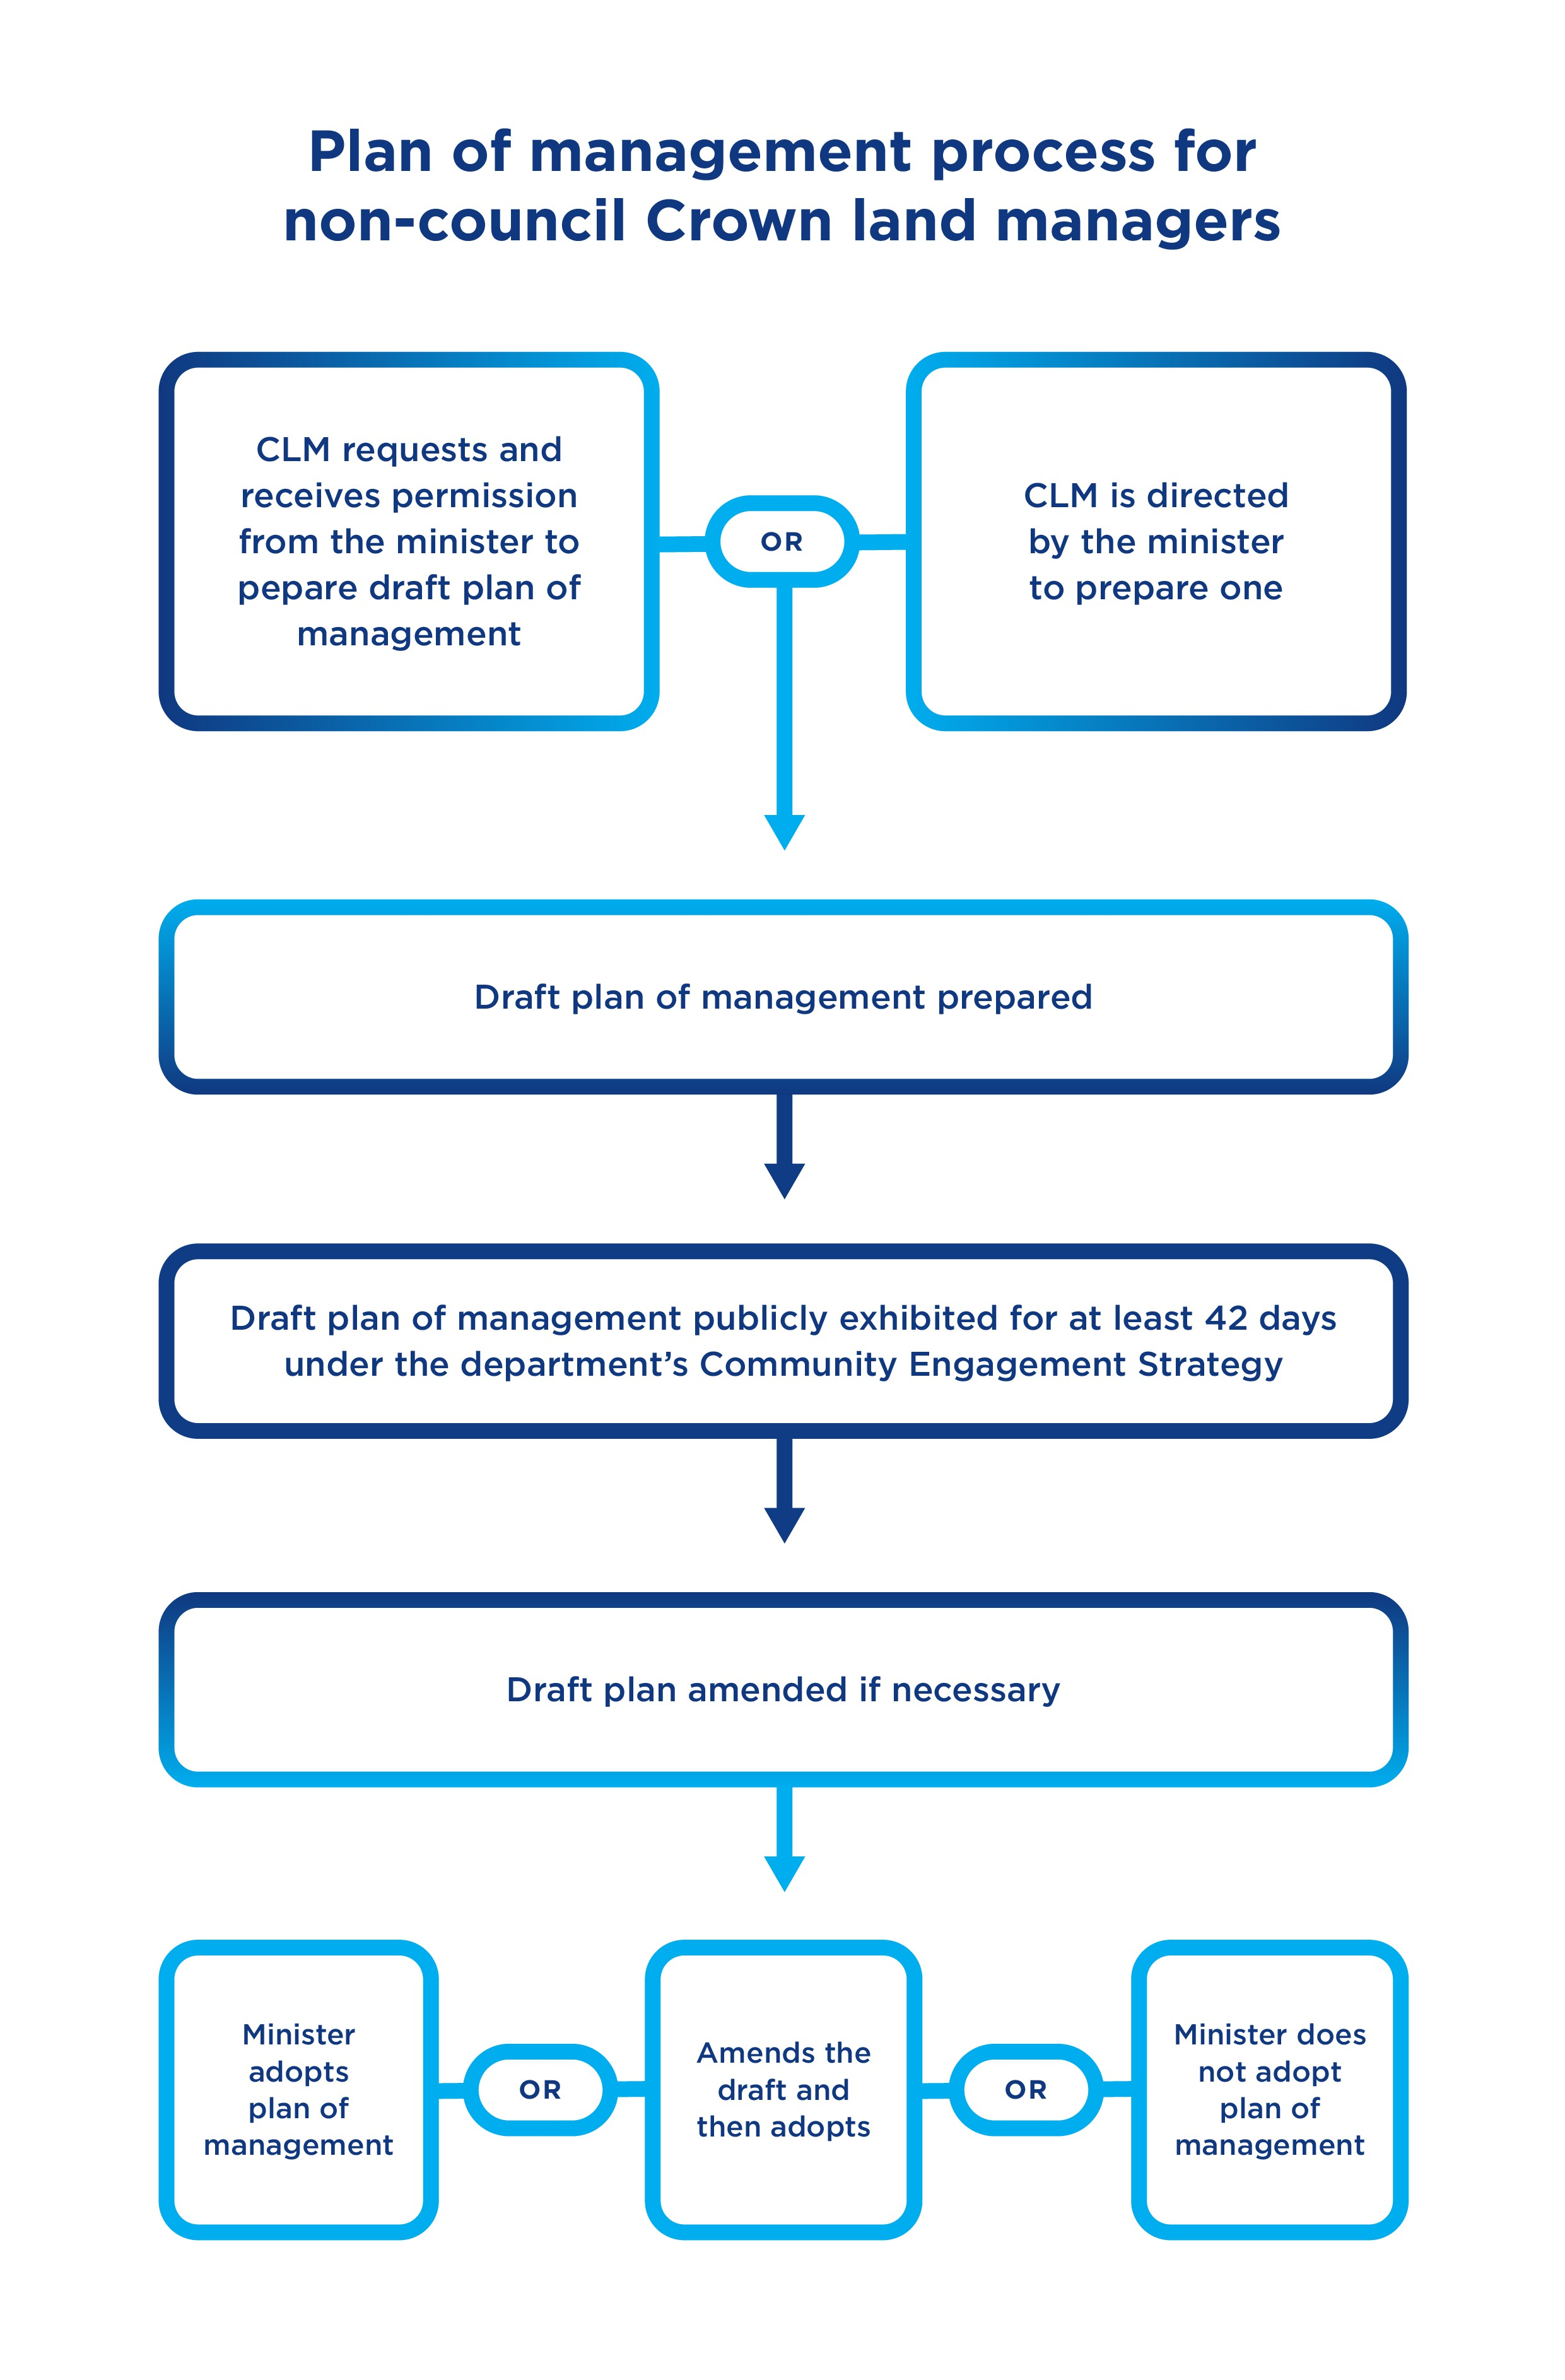 Plan of management process for non-council CLMs-page-0.jpg